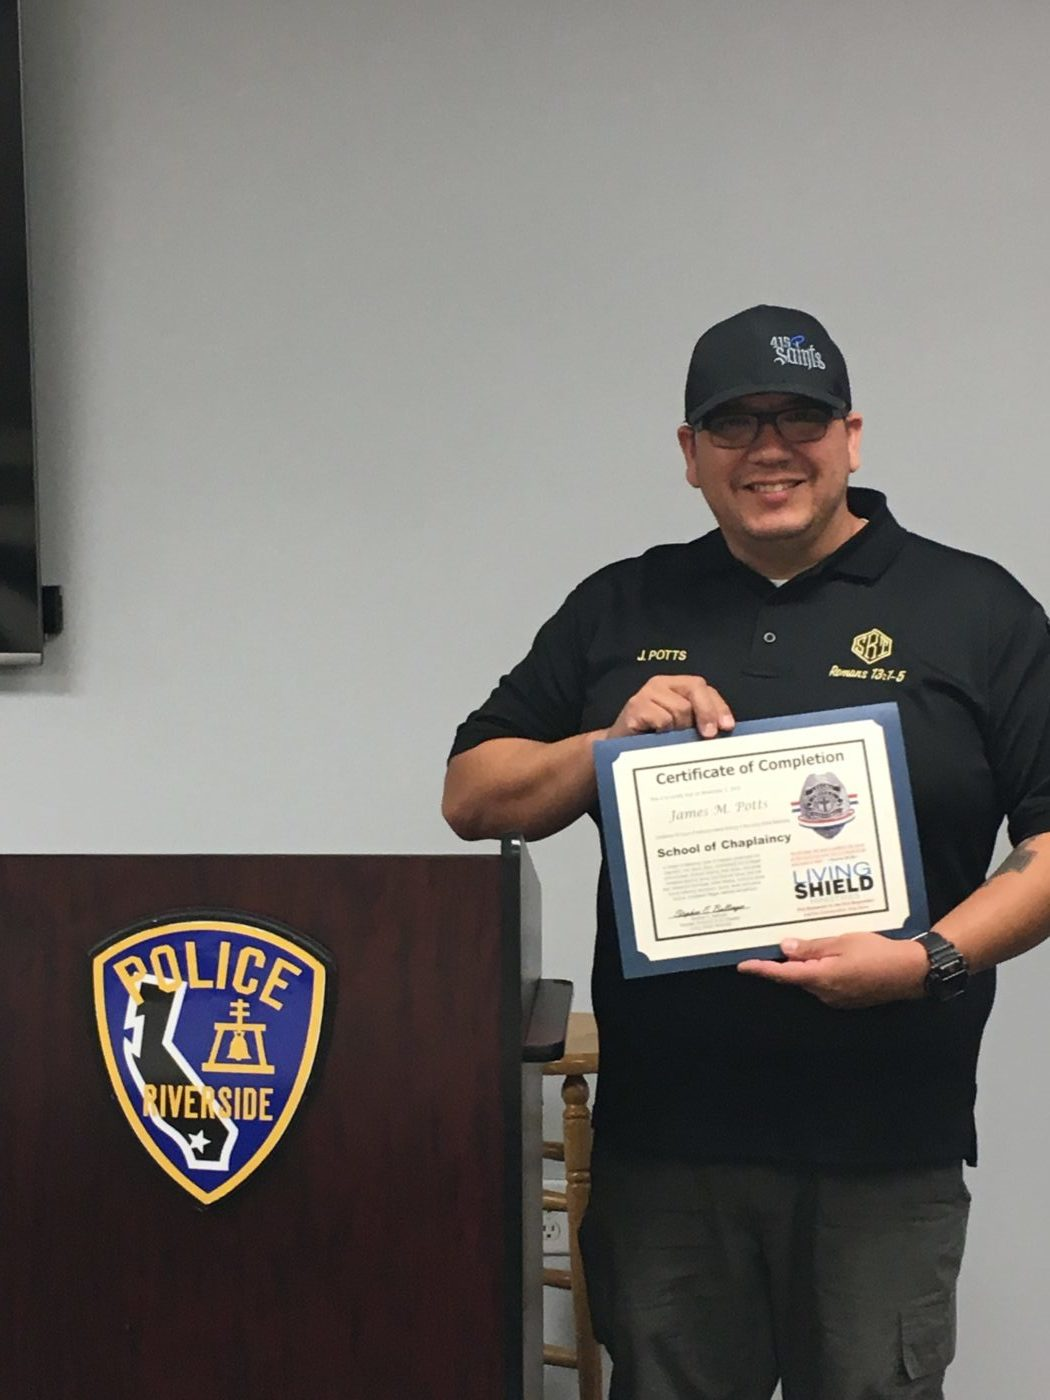 CSLEA CACI Member Completes Chaplaincy Course to Assist First Responders